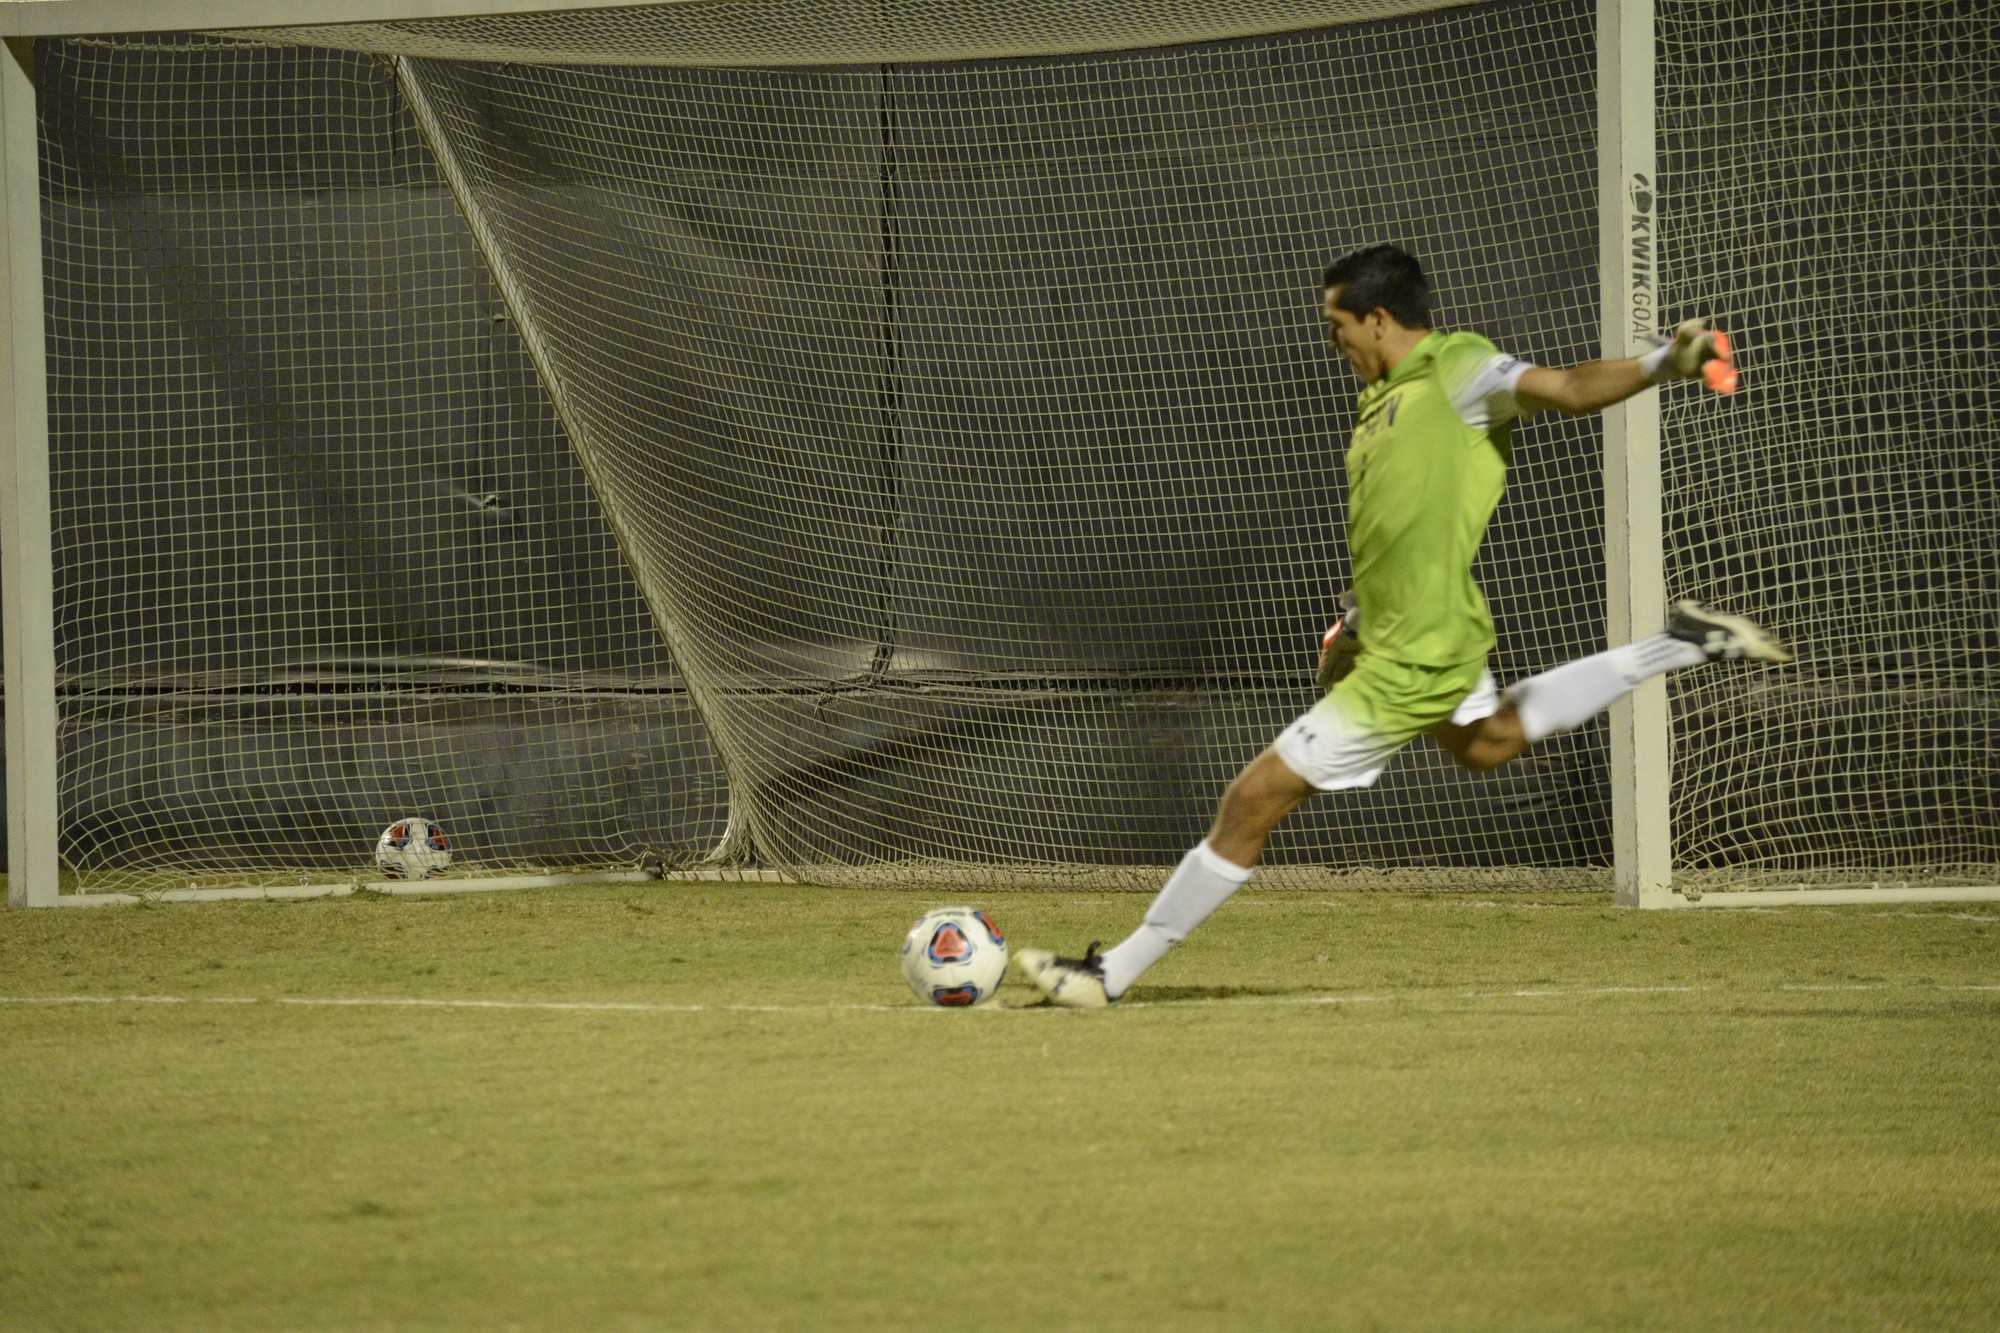 CSUN goalie kicks ball from the goal